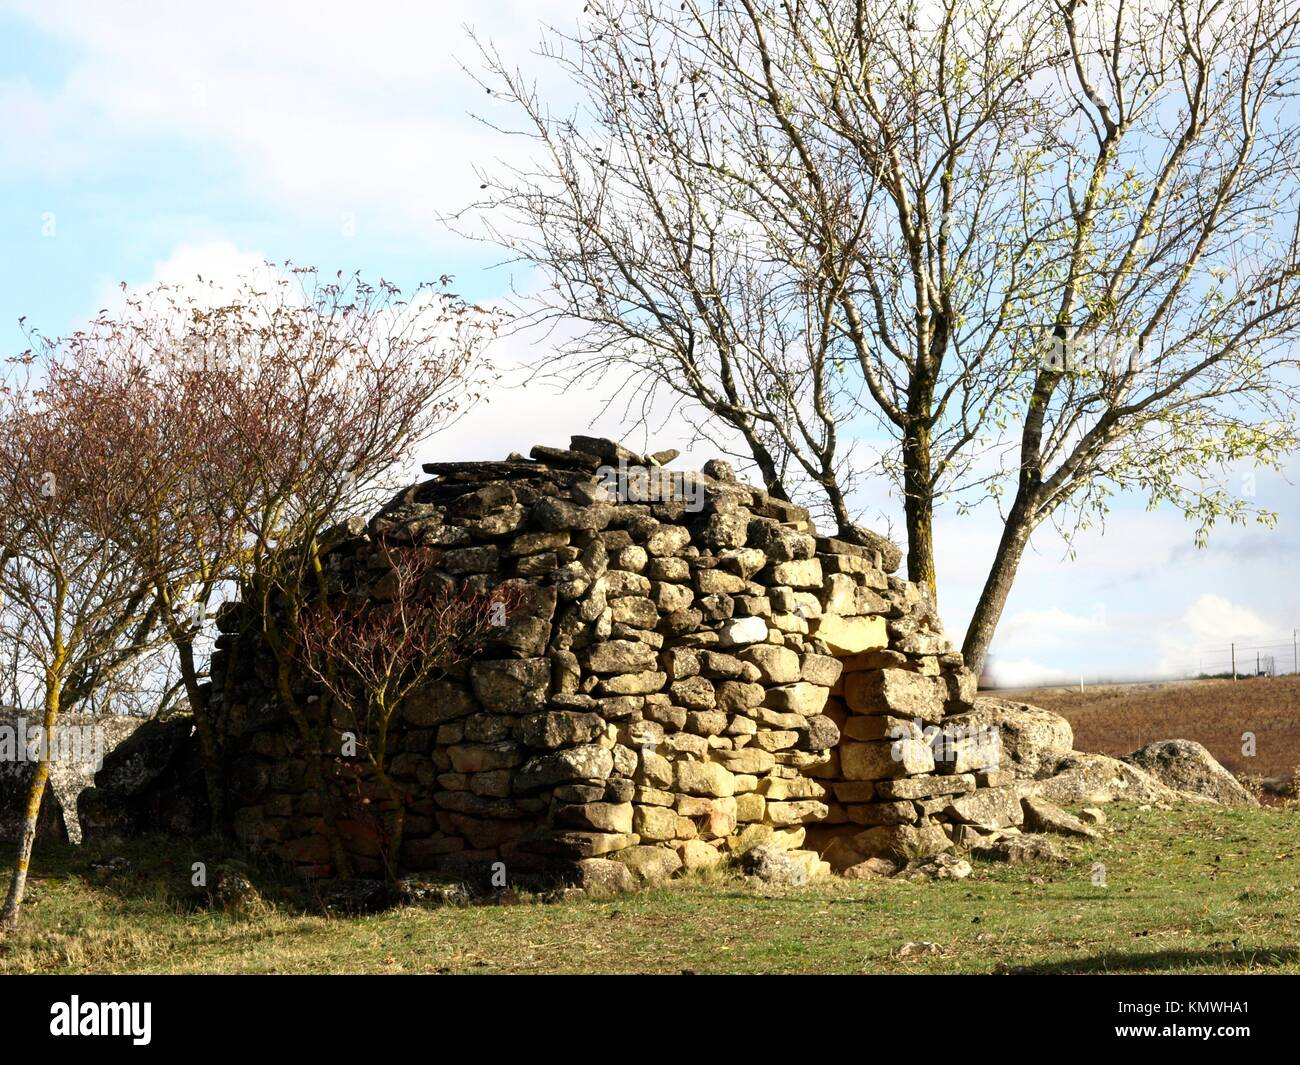 San Martin dolmen in La rioja. Spain - Stock Image